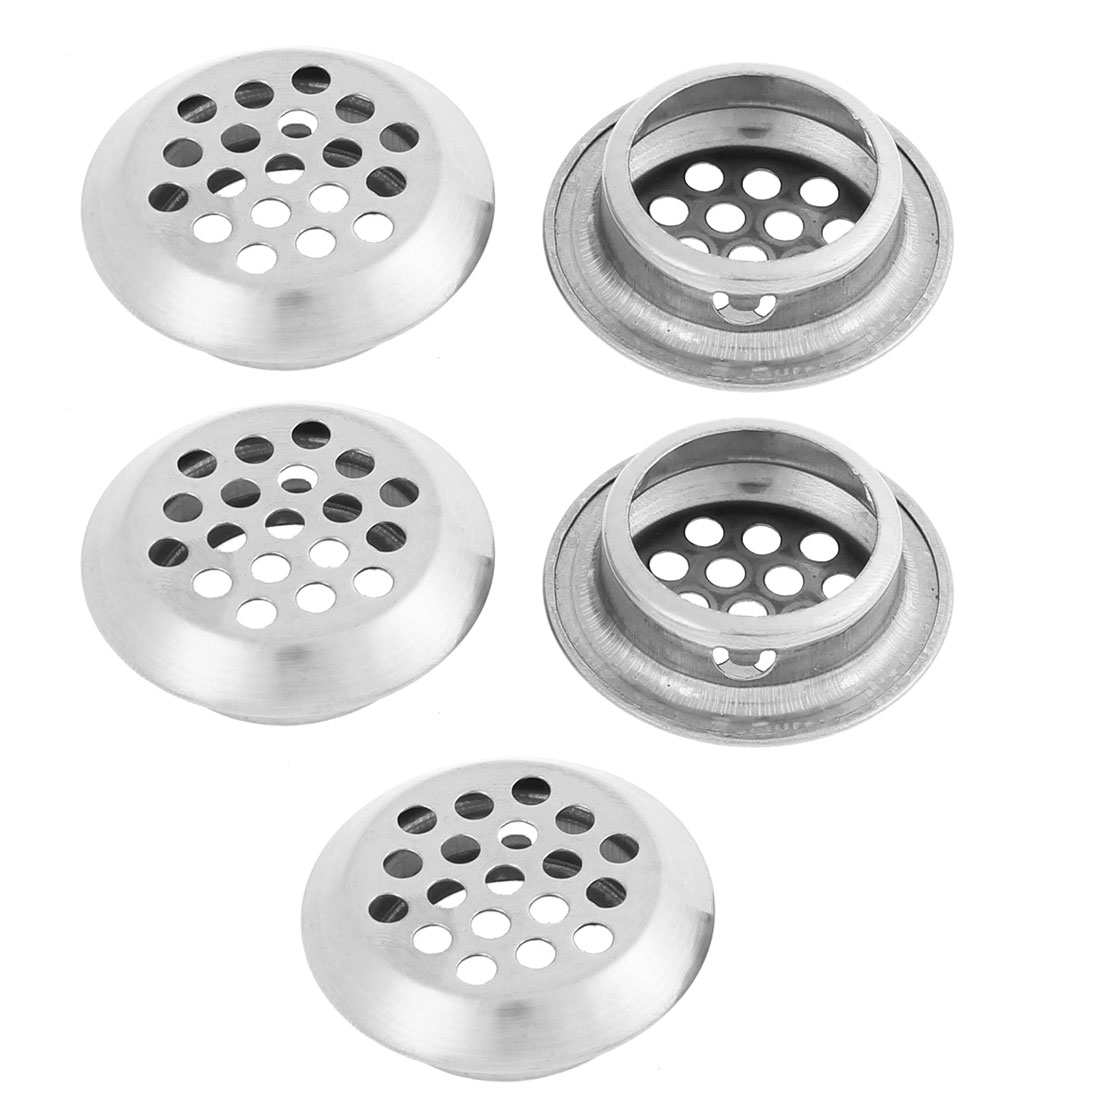 Round Shaped Mesh Hole Air Vent Louver 25mm Bottom Dia 5Pcs